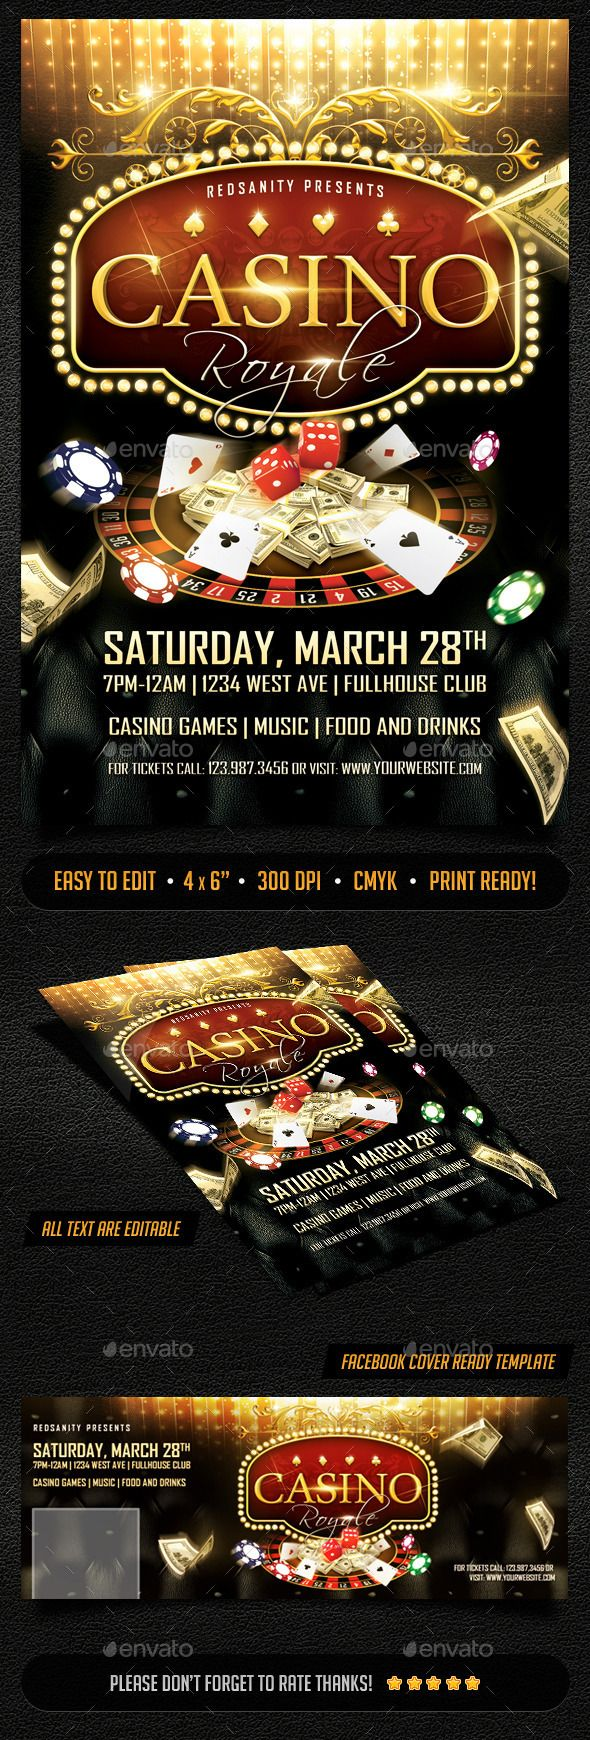 Casino Royale Flyer ...